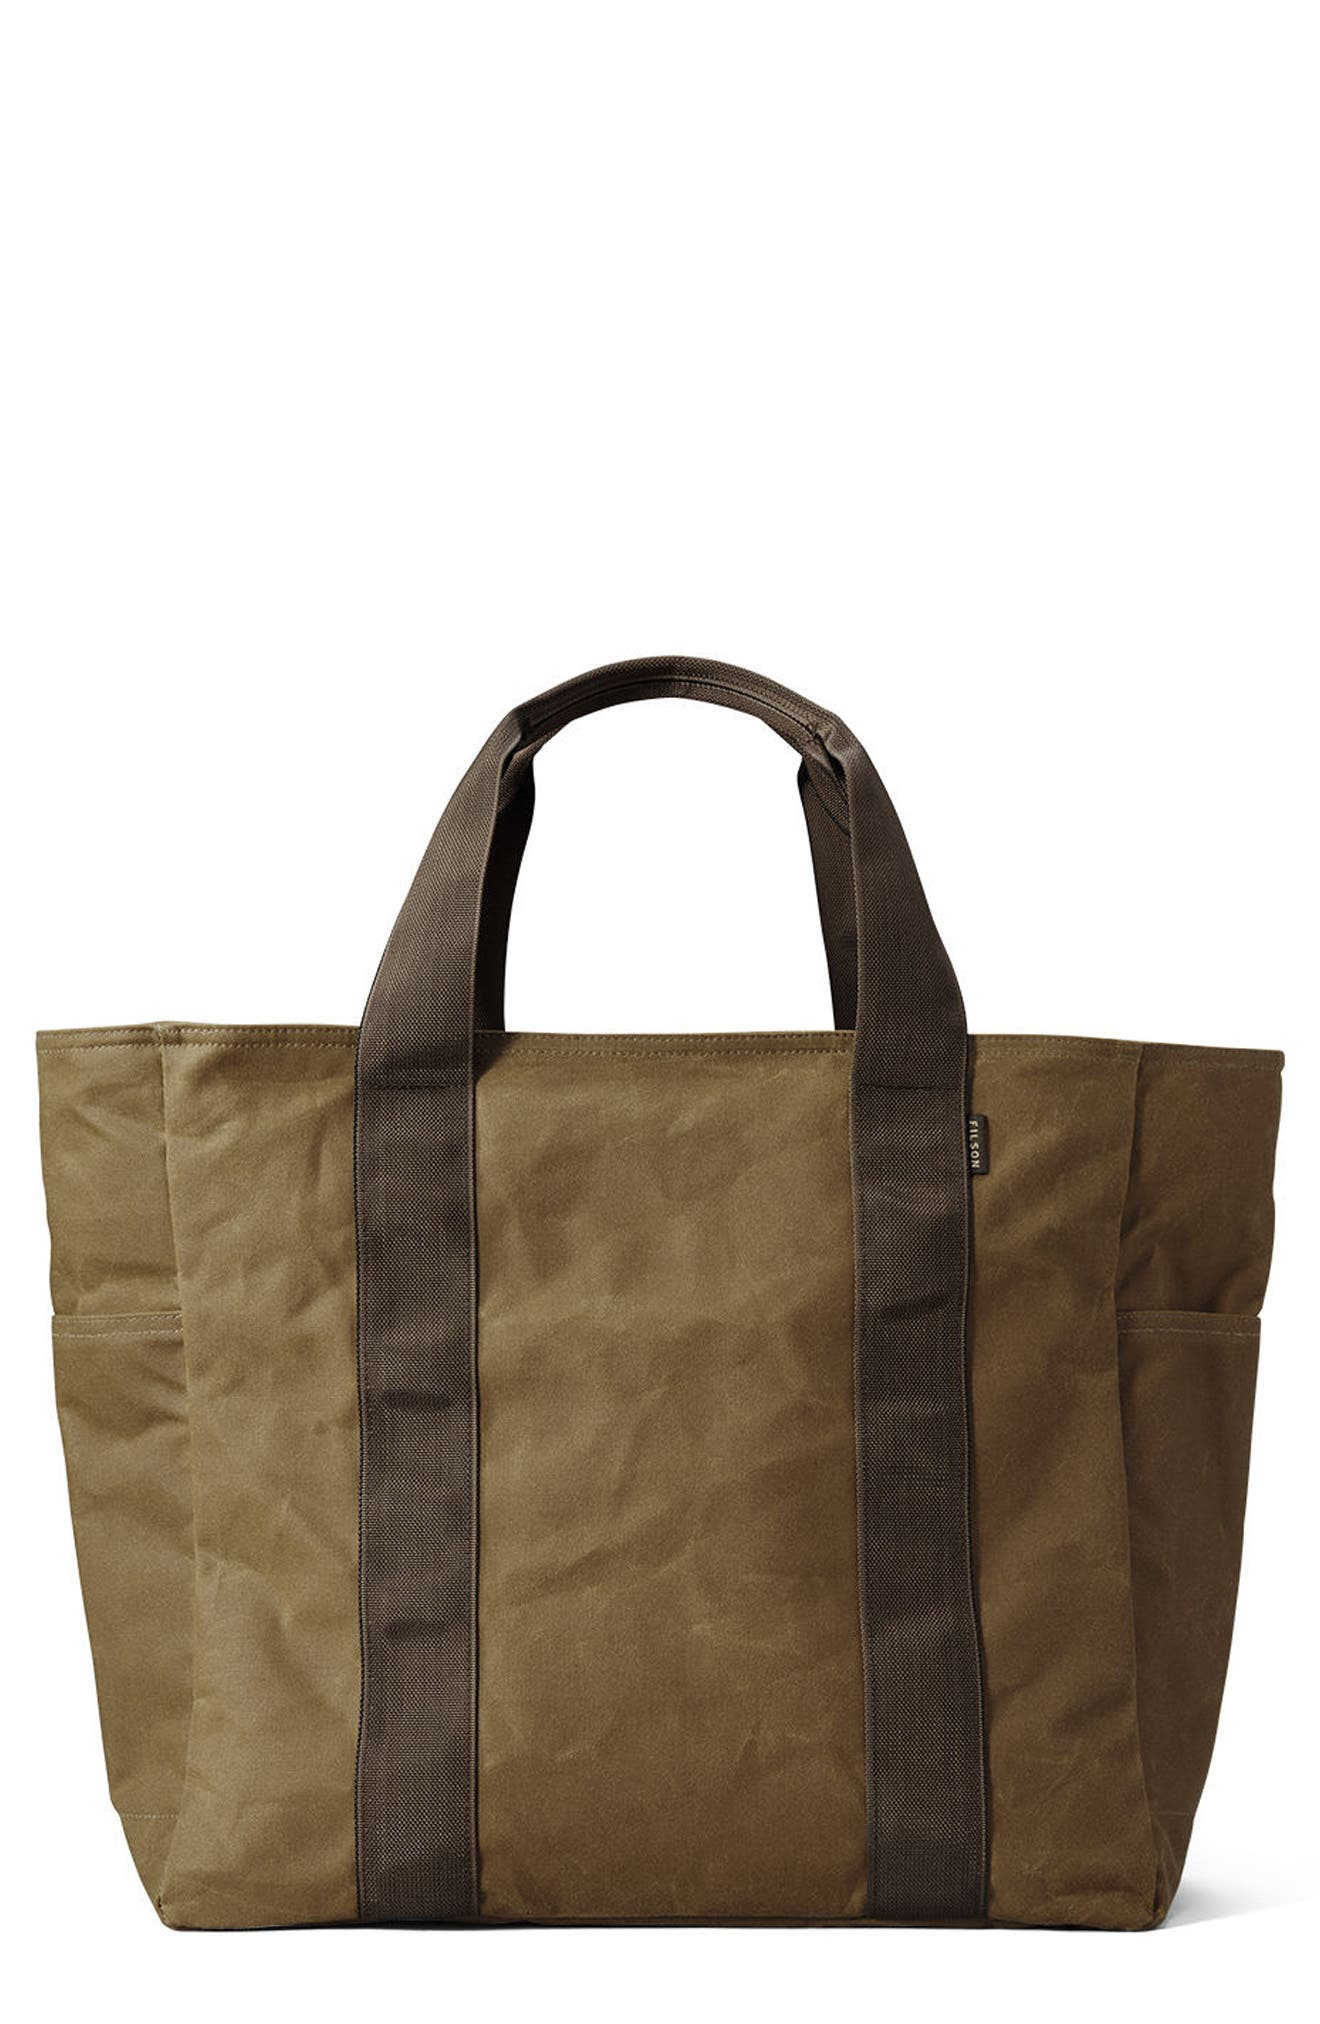 Large Grab 'n' Go Tote Bag,                         Main,                         color, DARK TAN/ BROWN